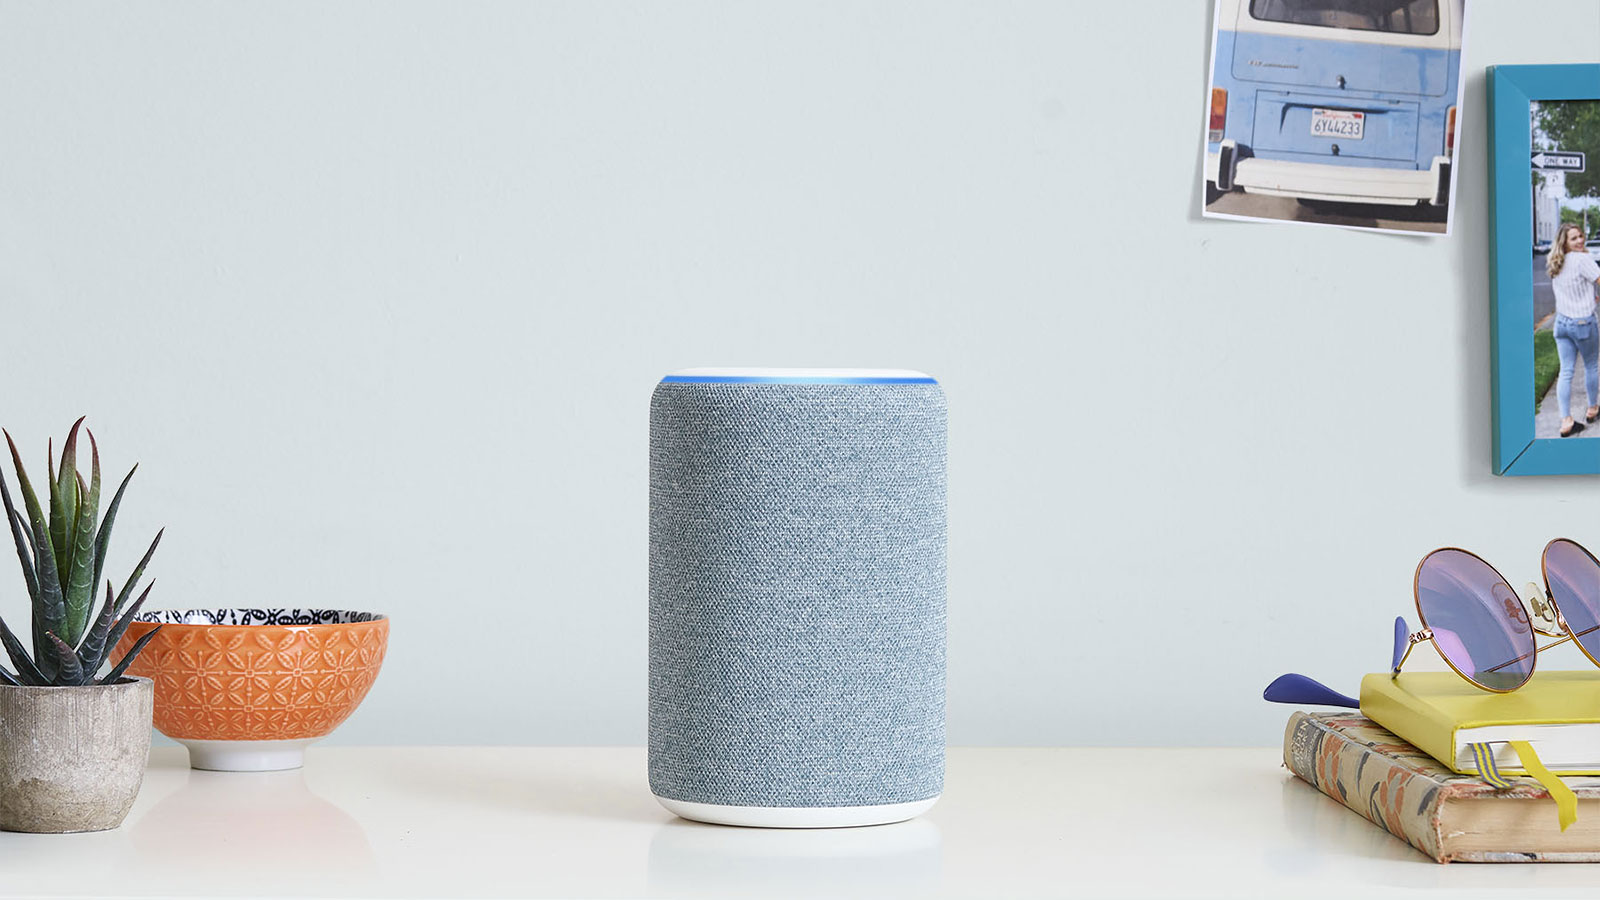 Alexa (and other digital assistants) are entering the job search market